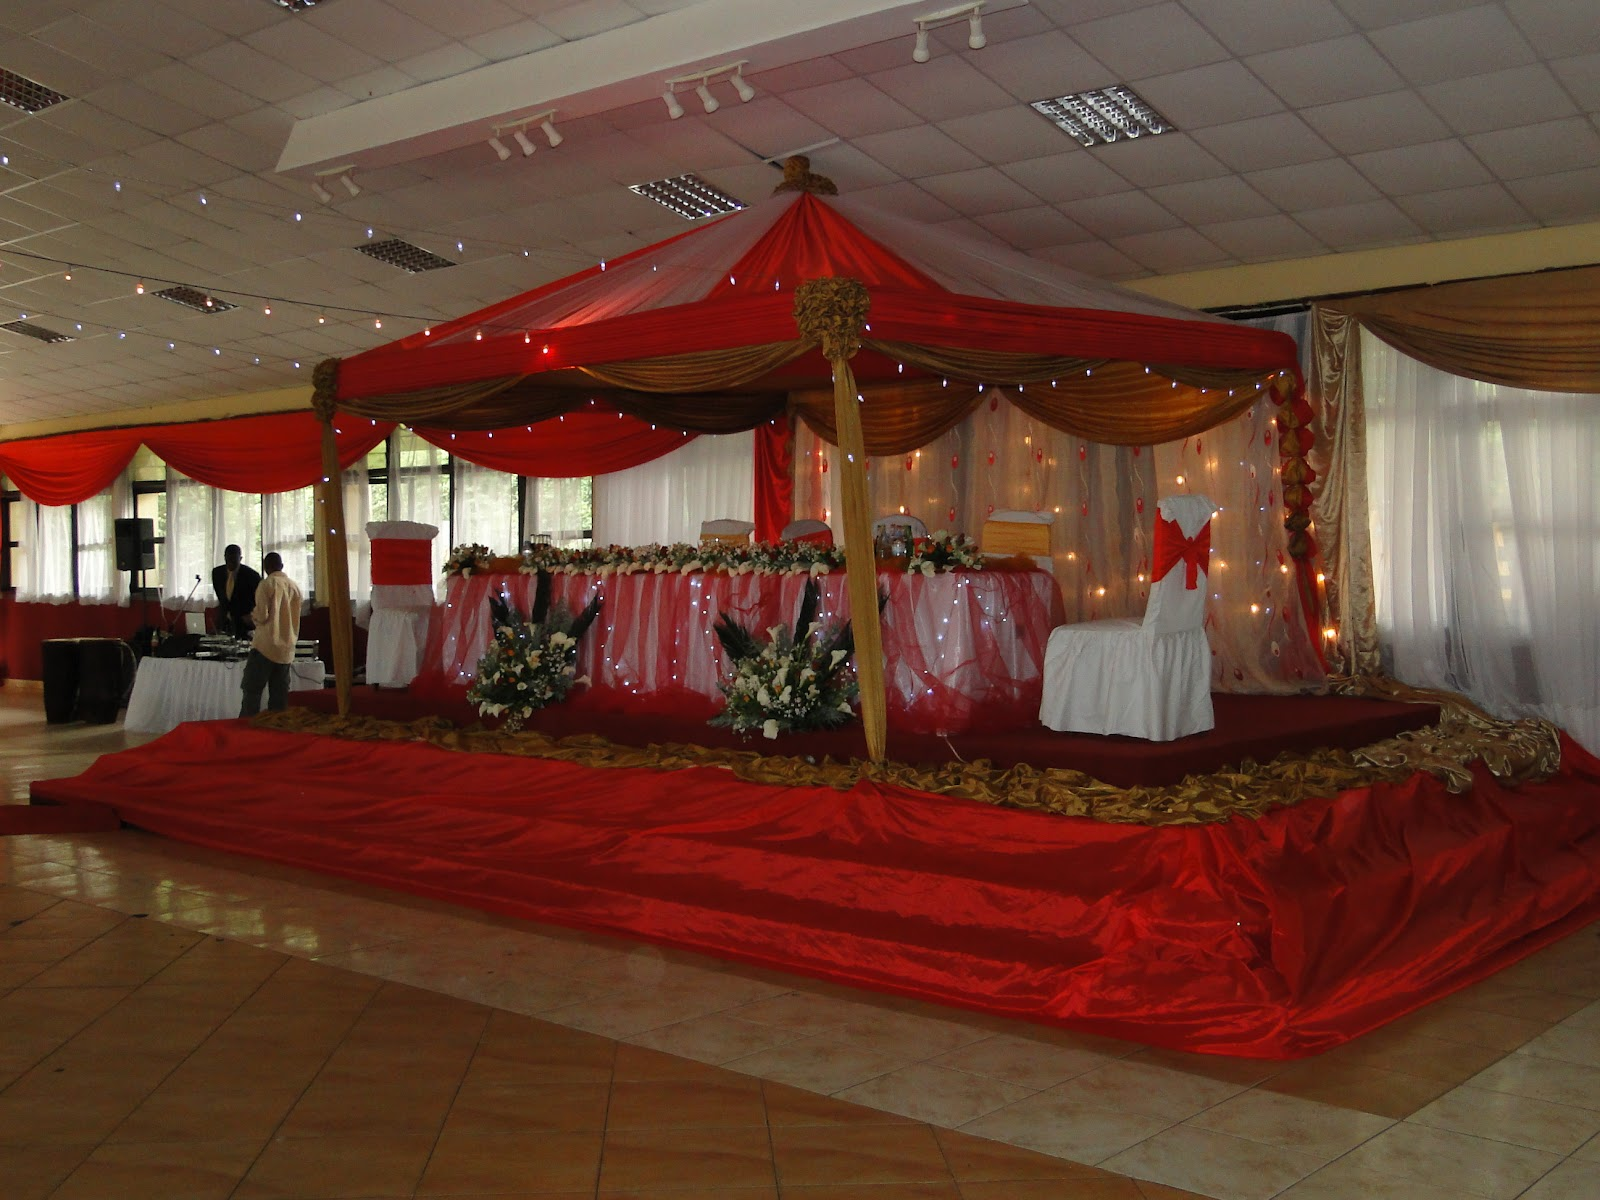 My rwandan journey mushanana madness it was a long and interesting day and honestly i am honored to have been a part of it having said that i think i have had my fill of rwandan weddings junglespirit Image collections